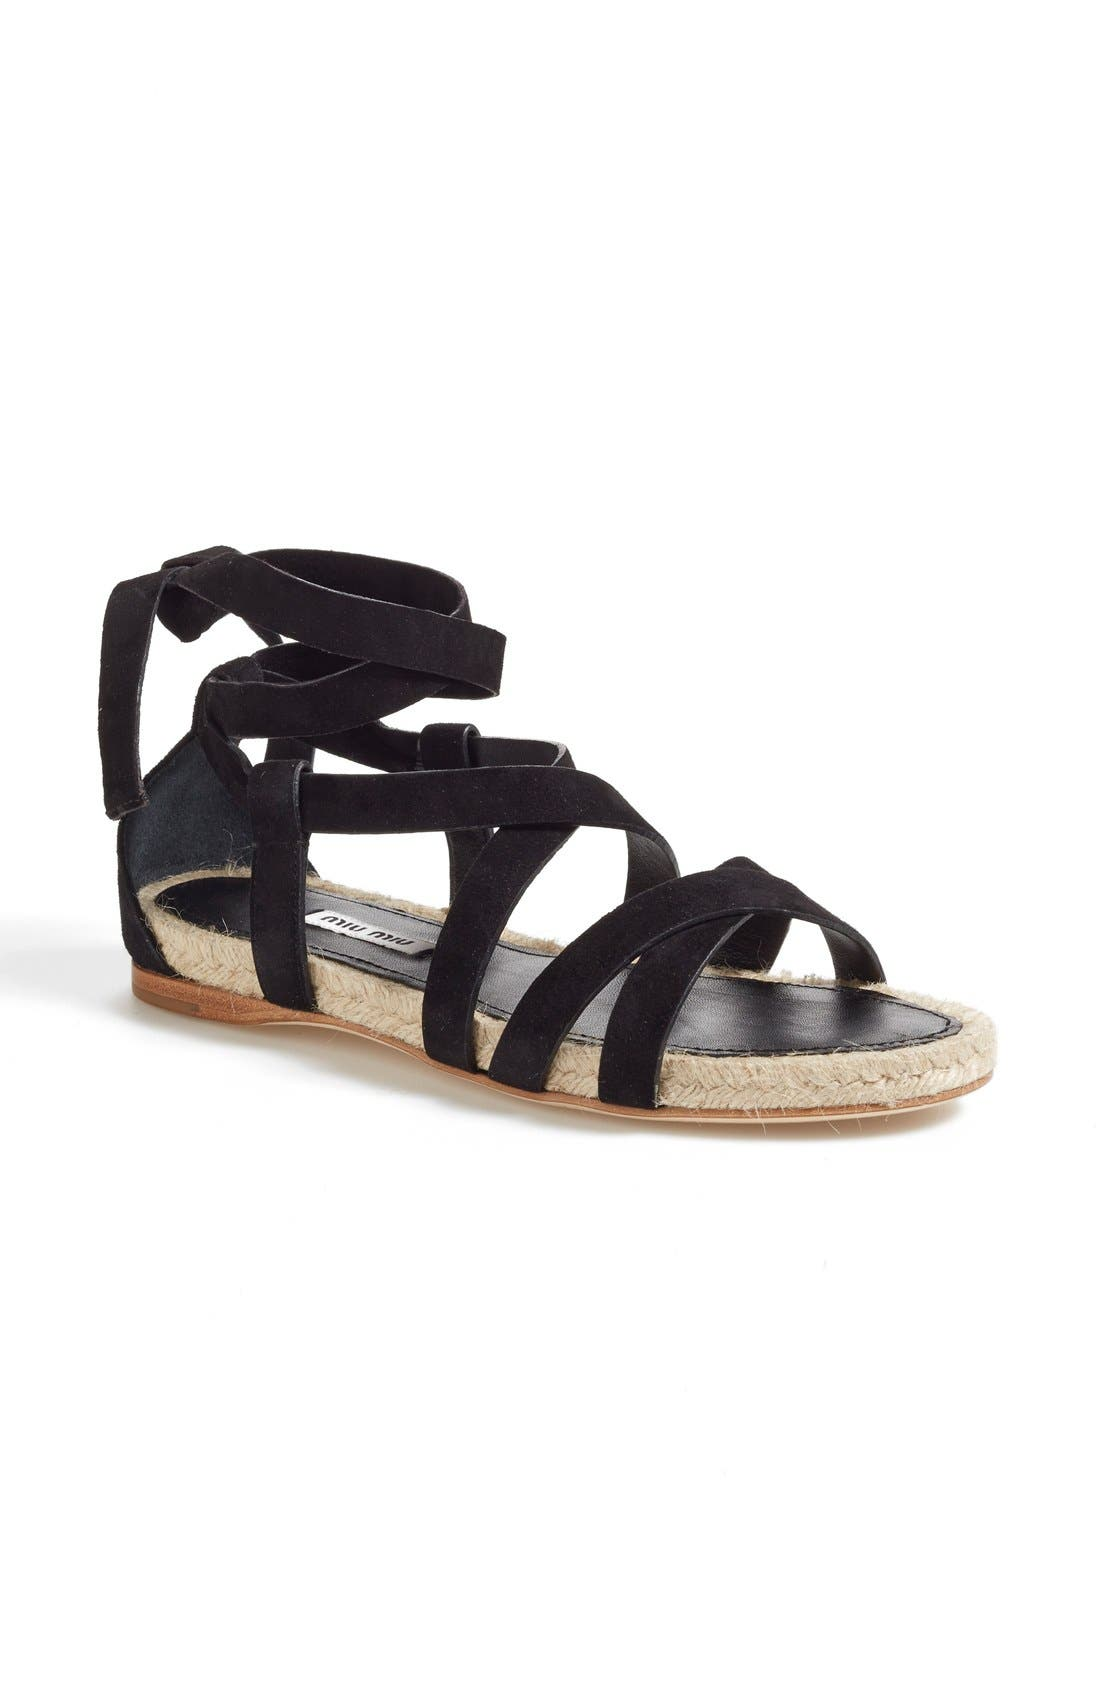 Alternate Image 1 Selected - Miu Miu Espadrille Sandal (Women)